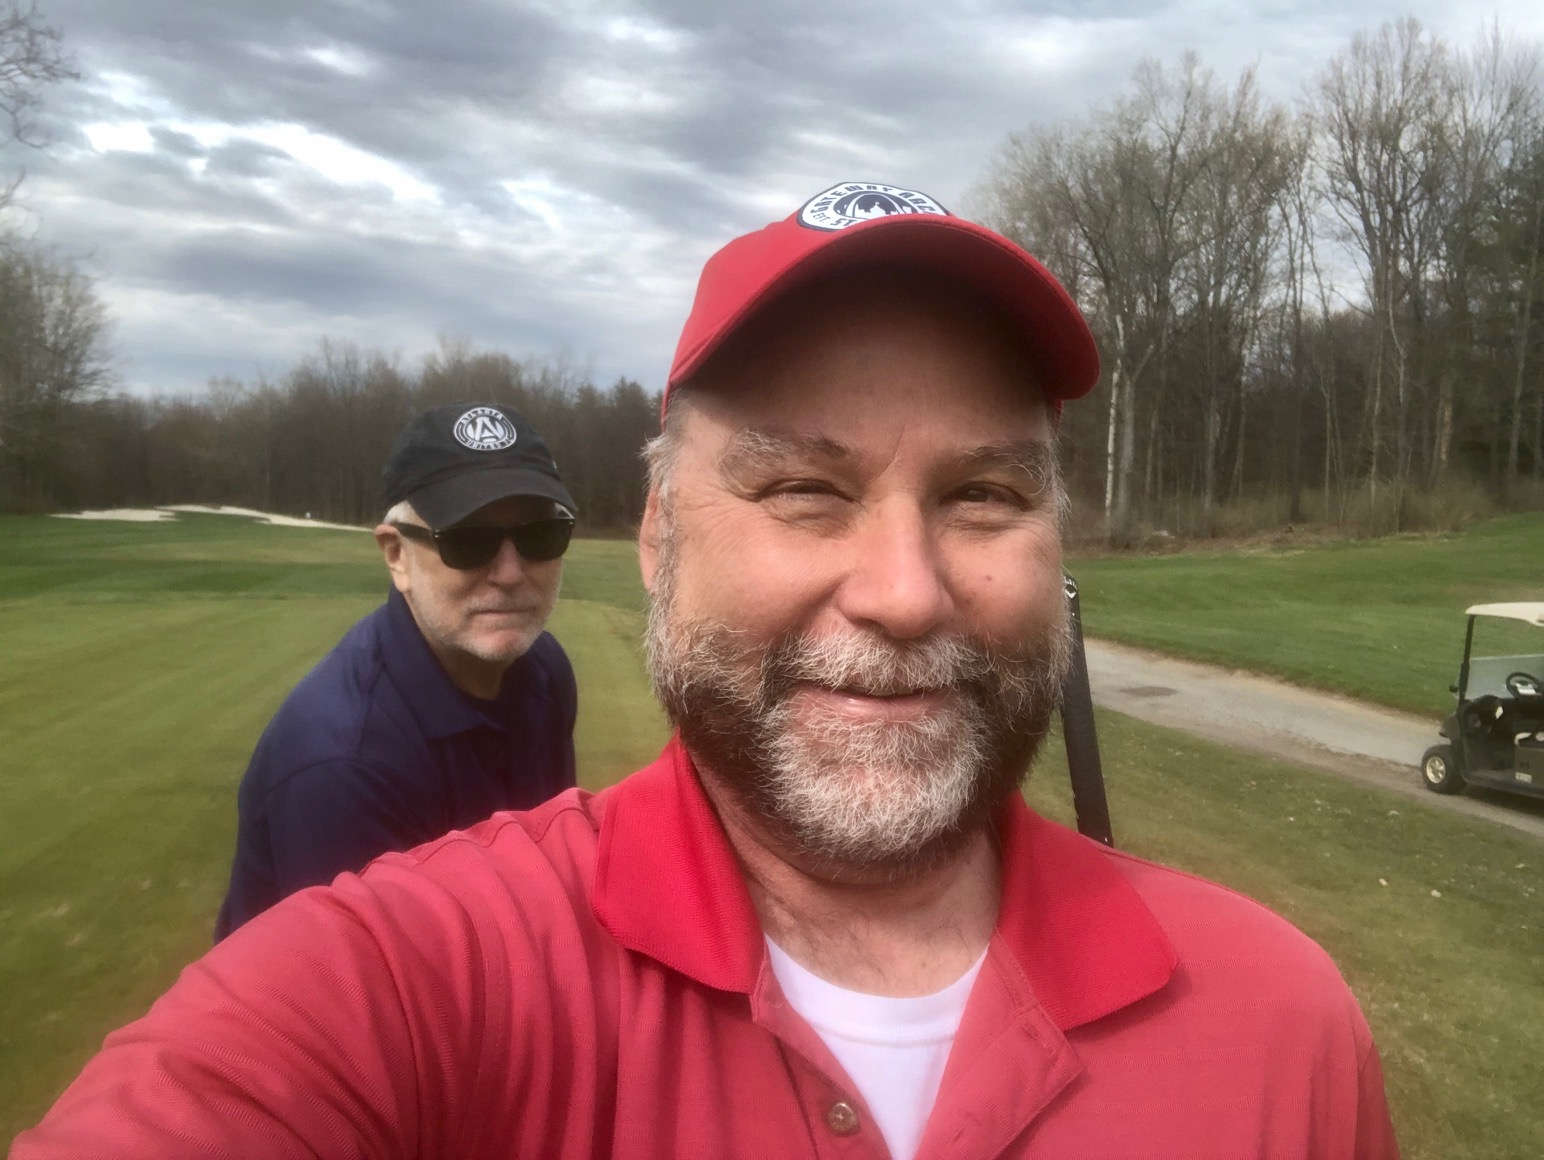 Golfing with KP